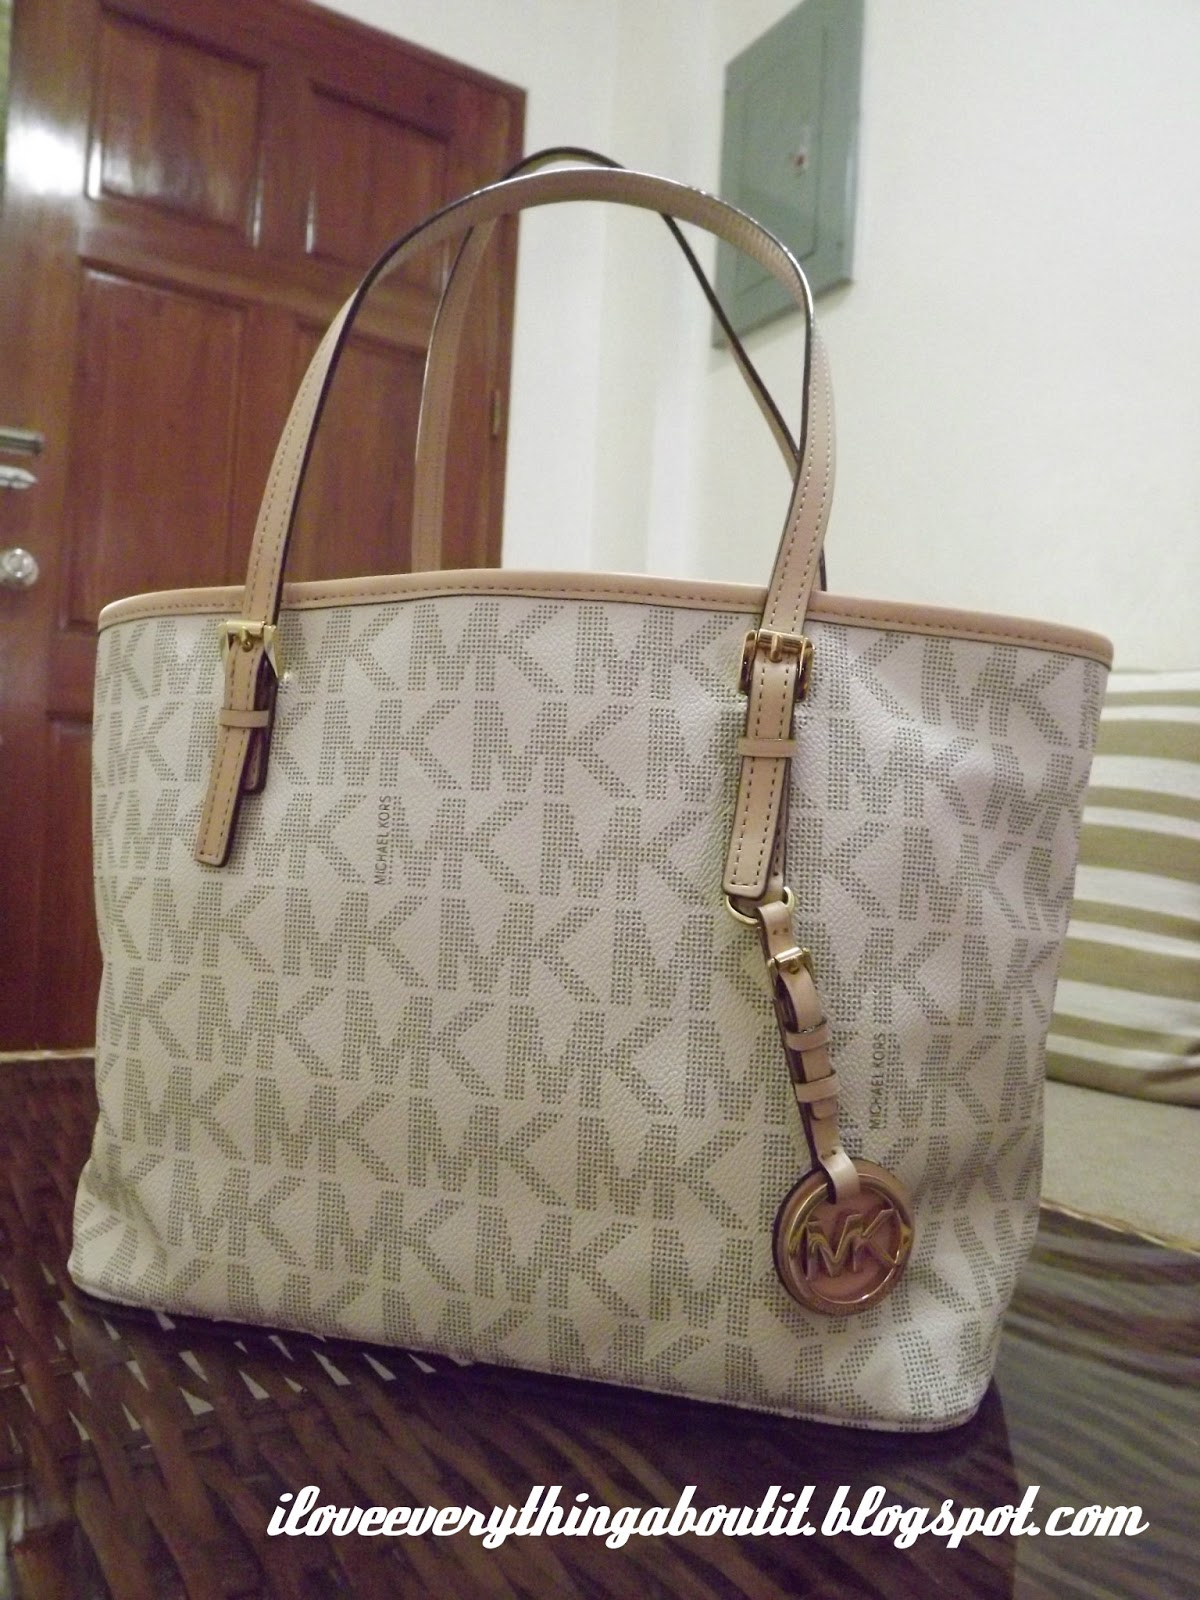 Michael kors tote bags philippines - How To Determine Authentic Mk Jet Set Travel Tote